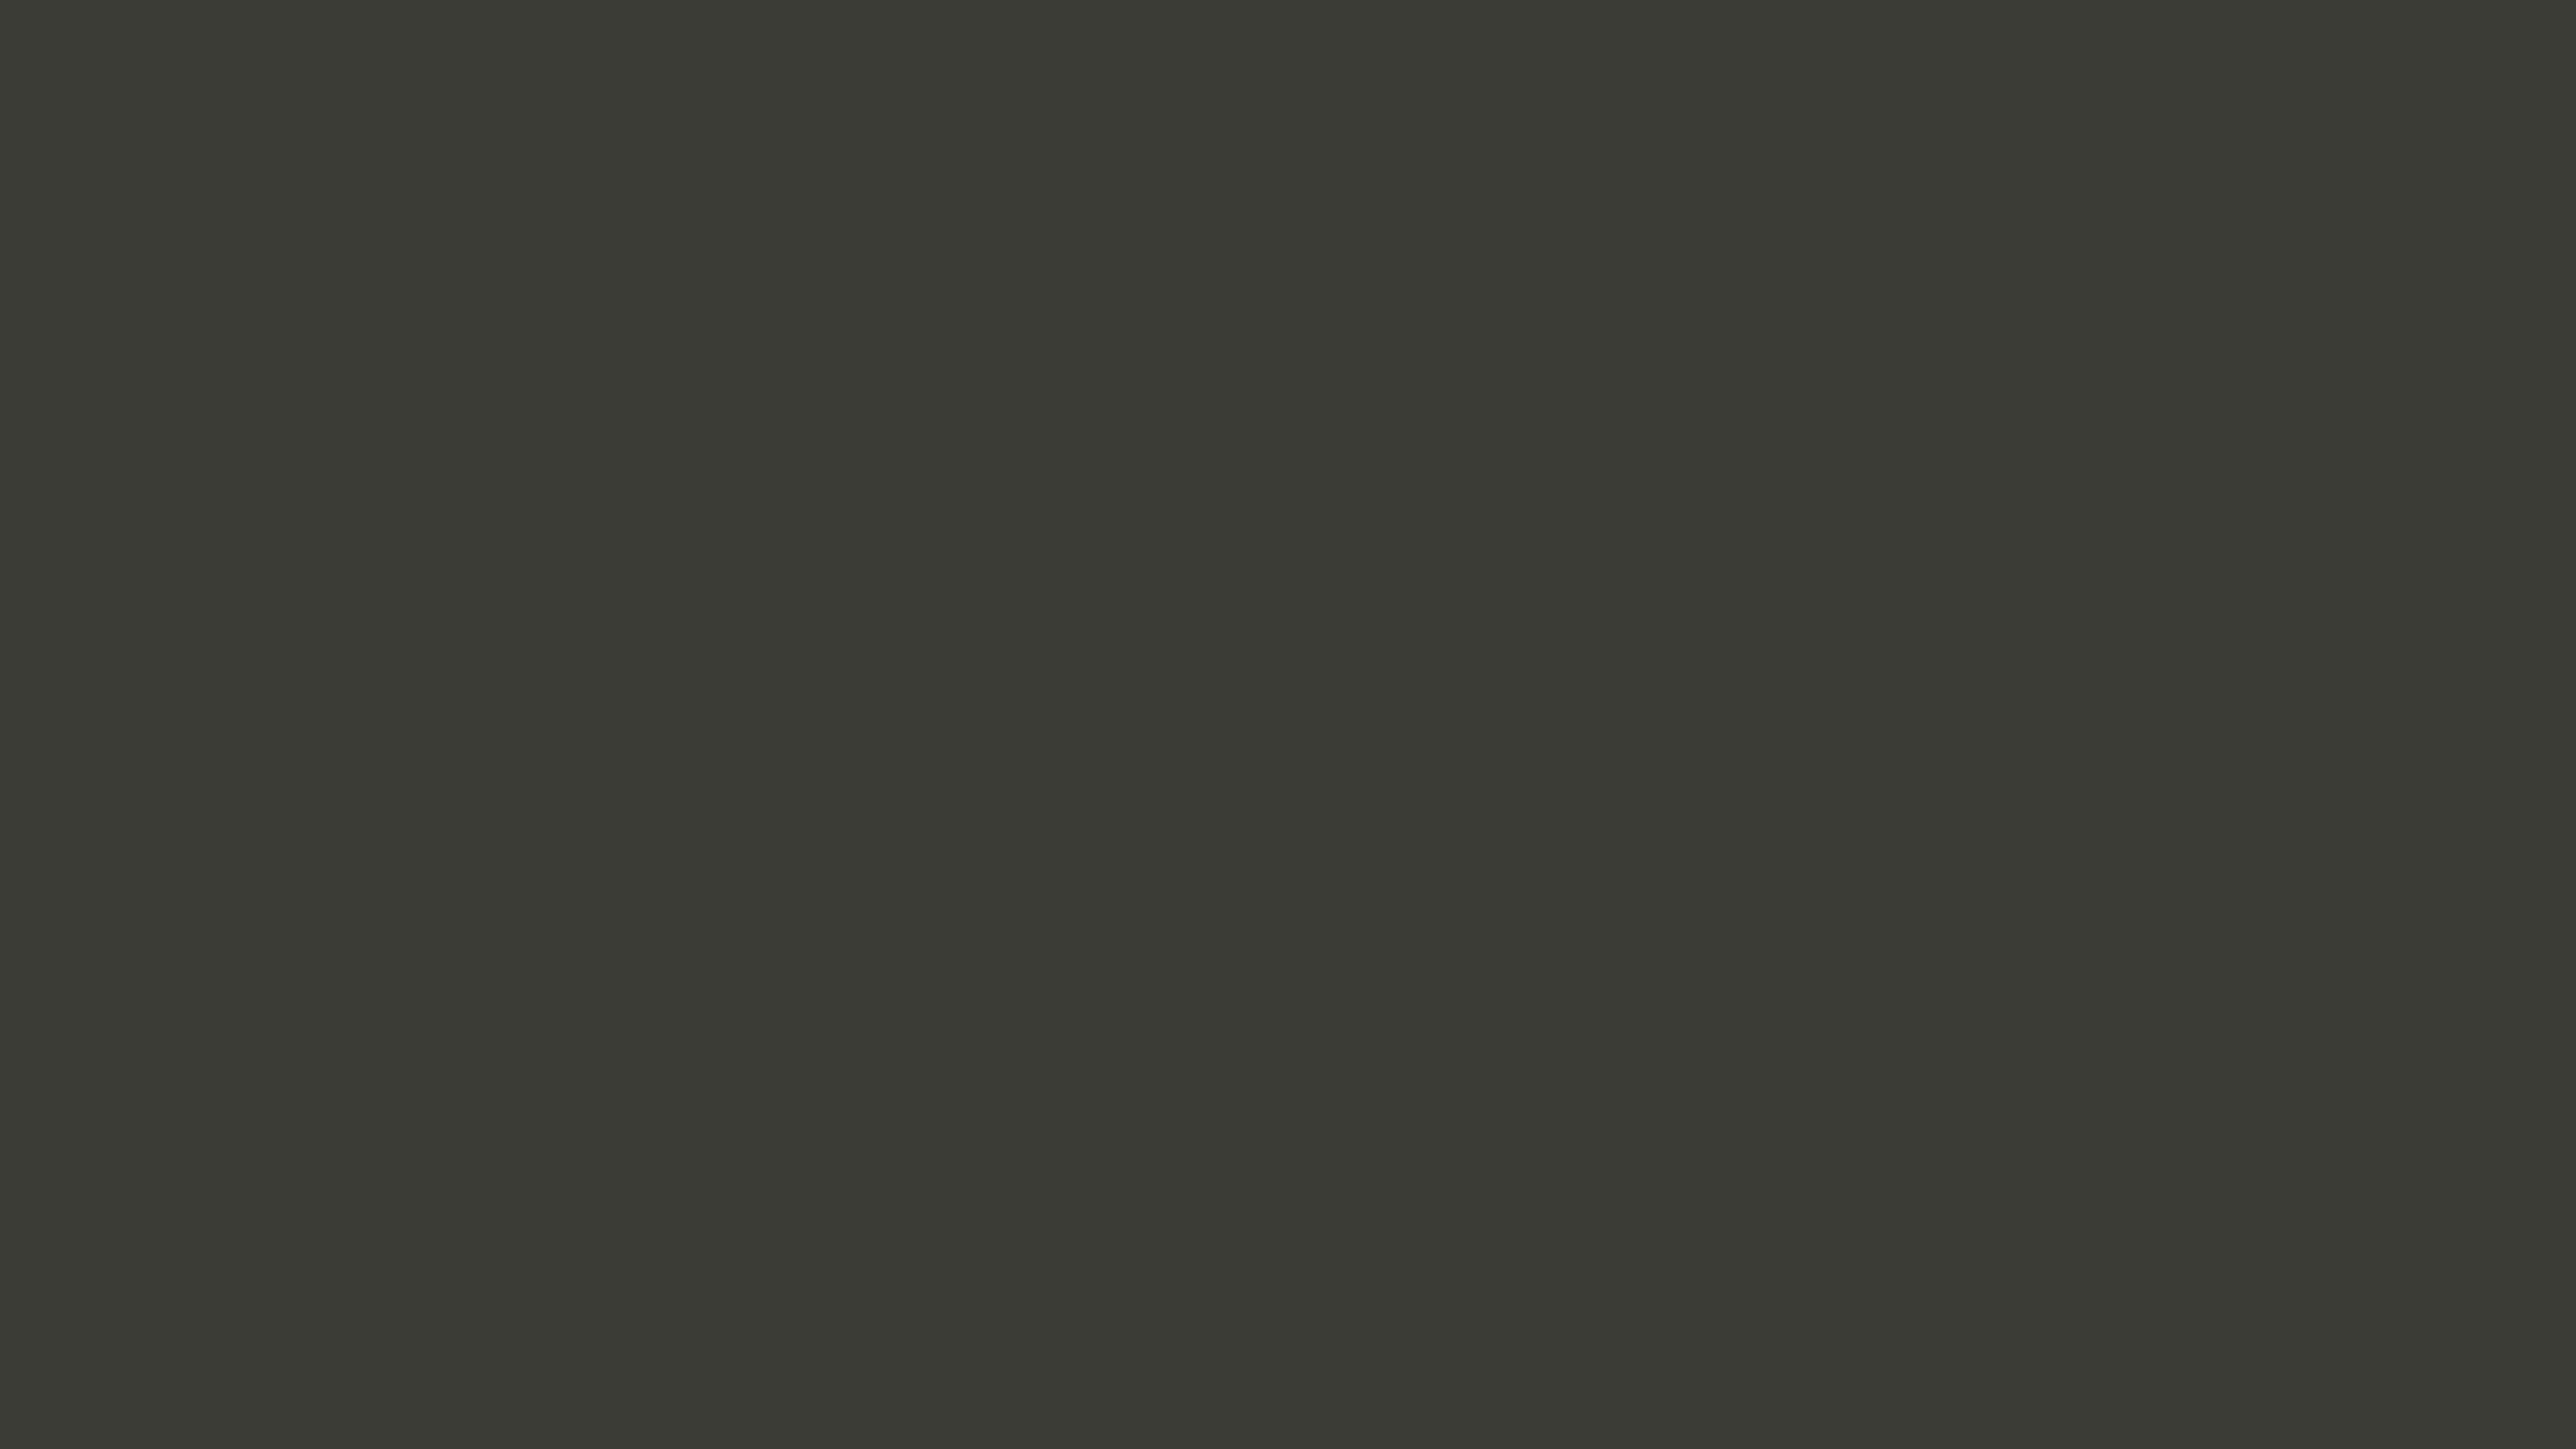 3840x2160 Black Olive Solid Color Background